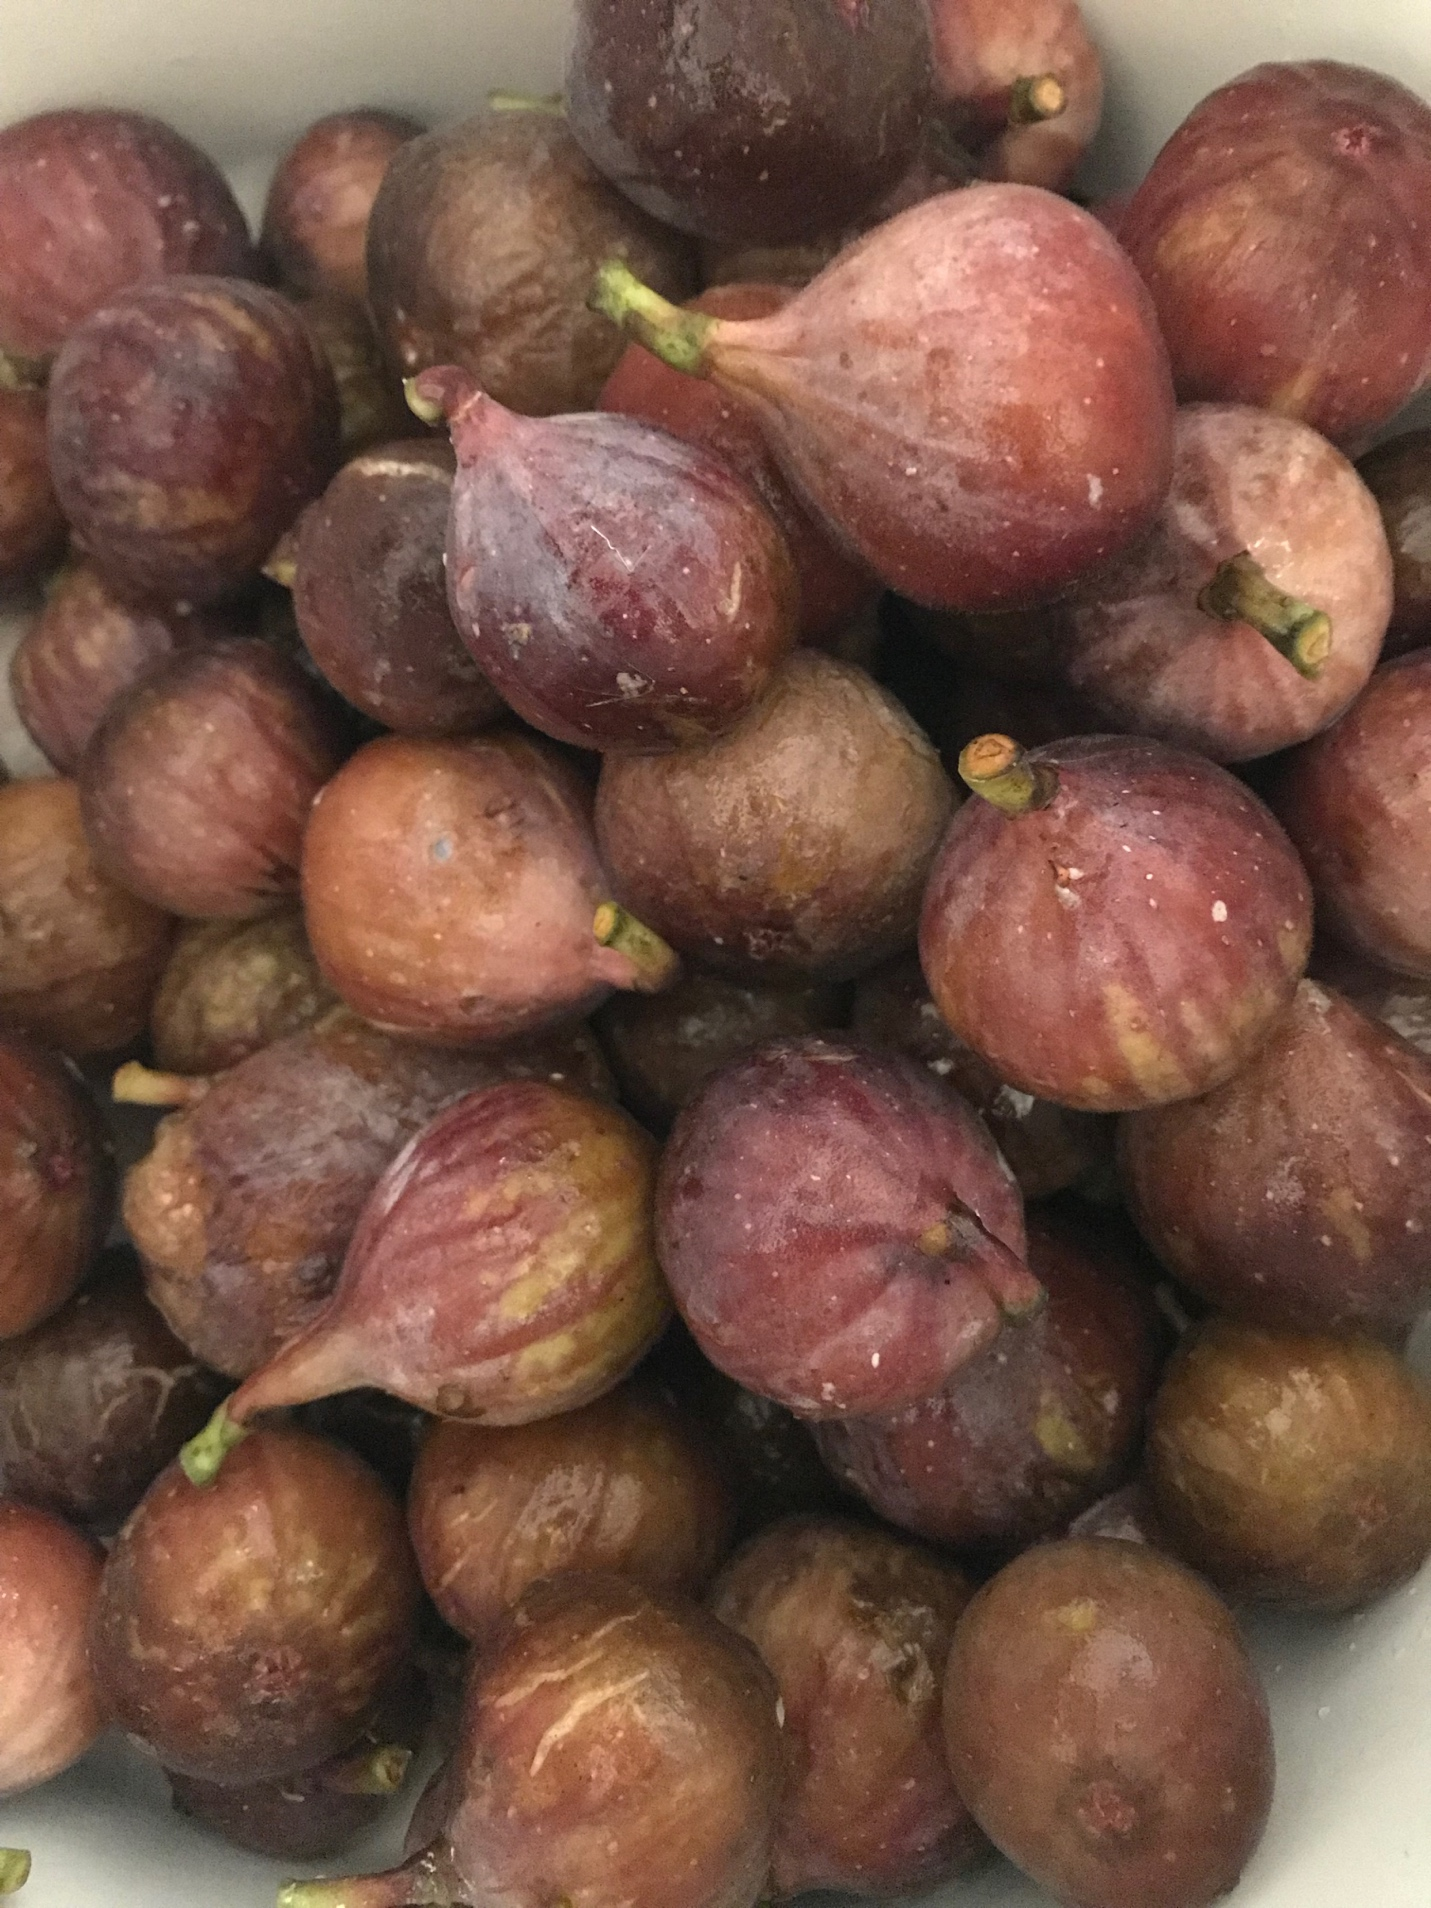 Ripe and freshly harvested figs.